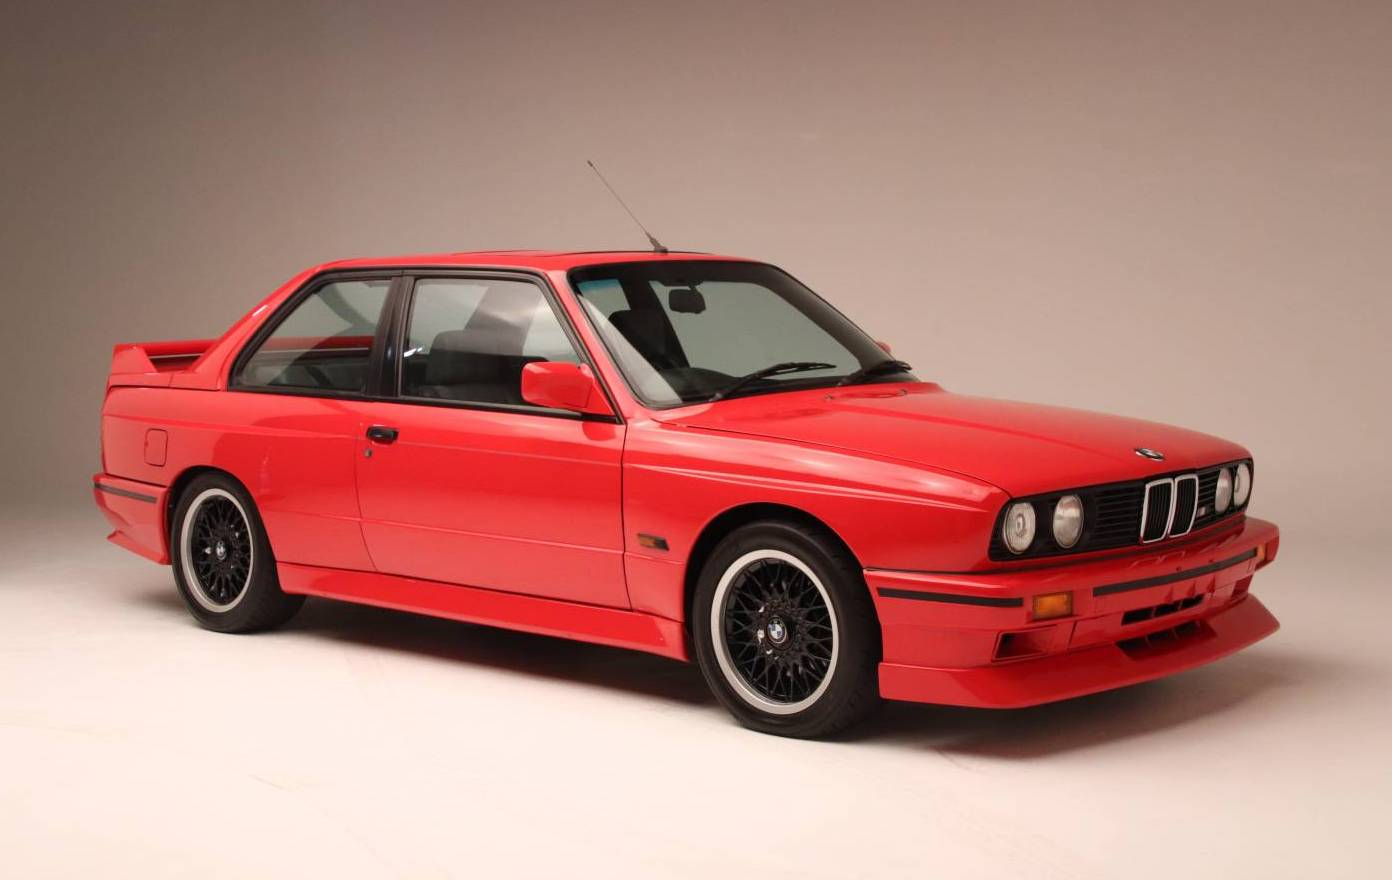 For Sale Rhd 1988 Bmw E30 M3 1960 Porsche 356b In Australia